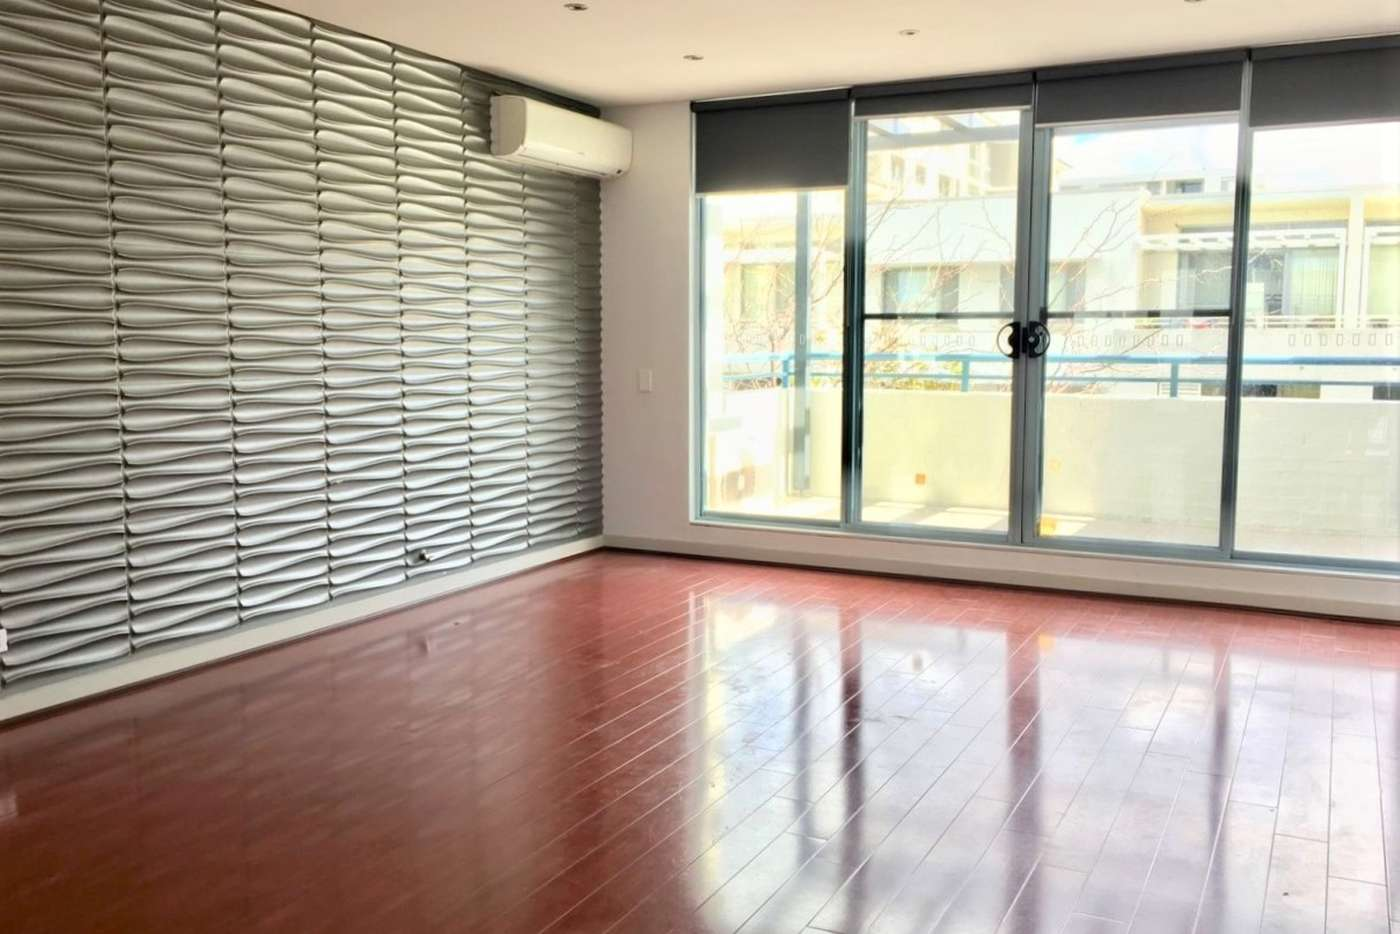 Main view of Homely apartment listing, 302/5 Stromboli Strait, Wentworth Point NSW 2127